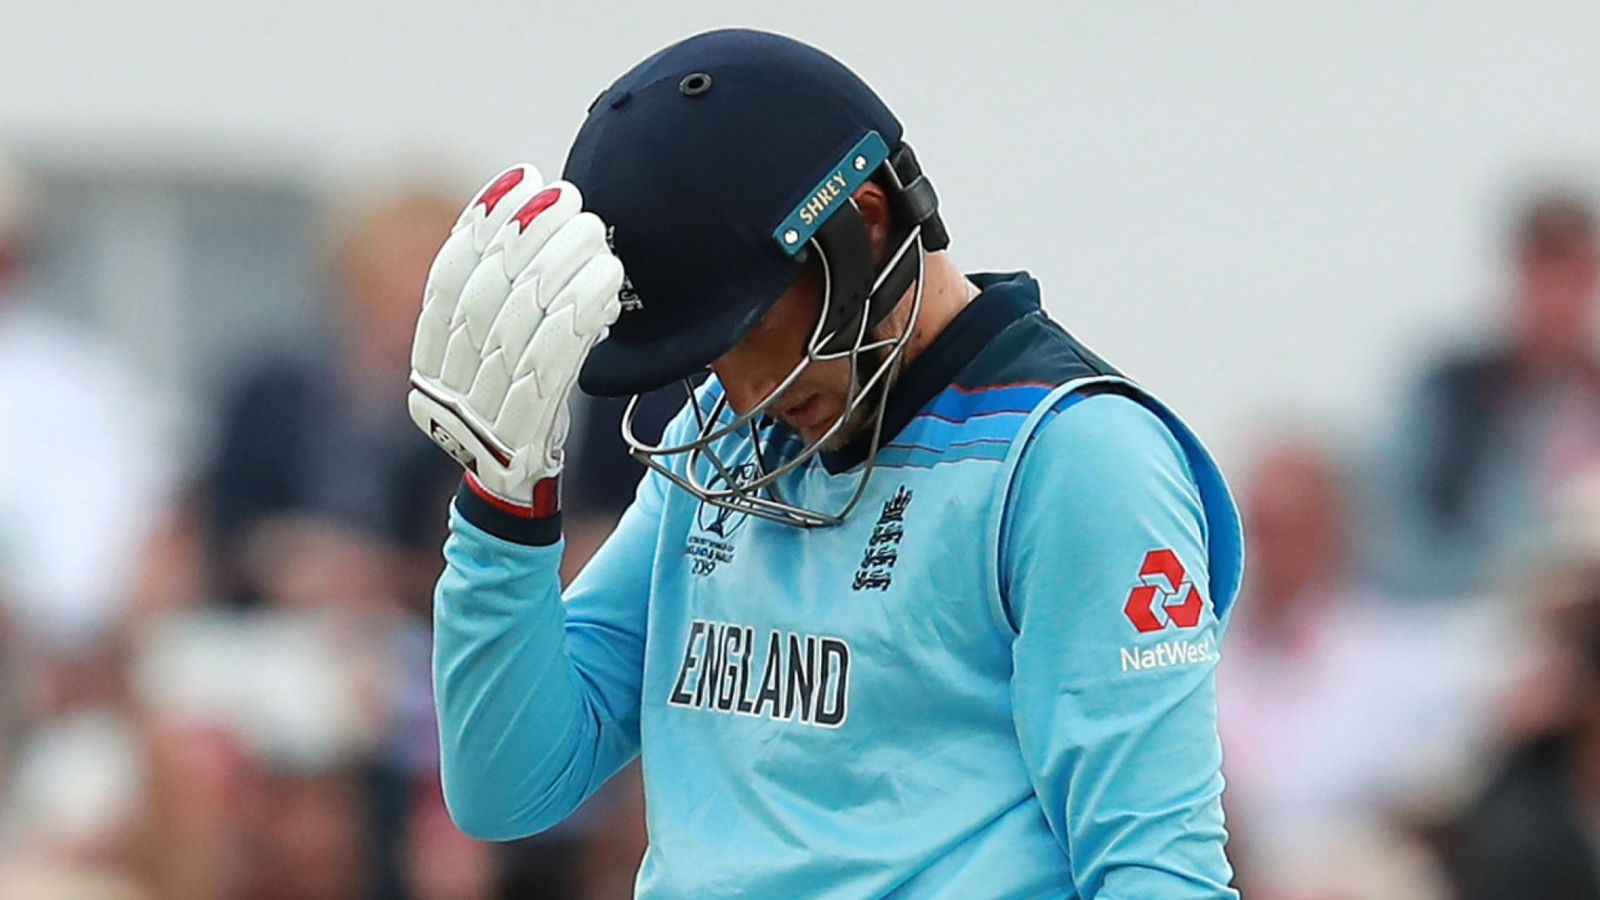 Nasser Hussain's England World Cup player ratings: Jos Buttler and Joe Root shine in losing cause